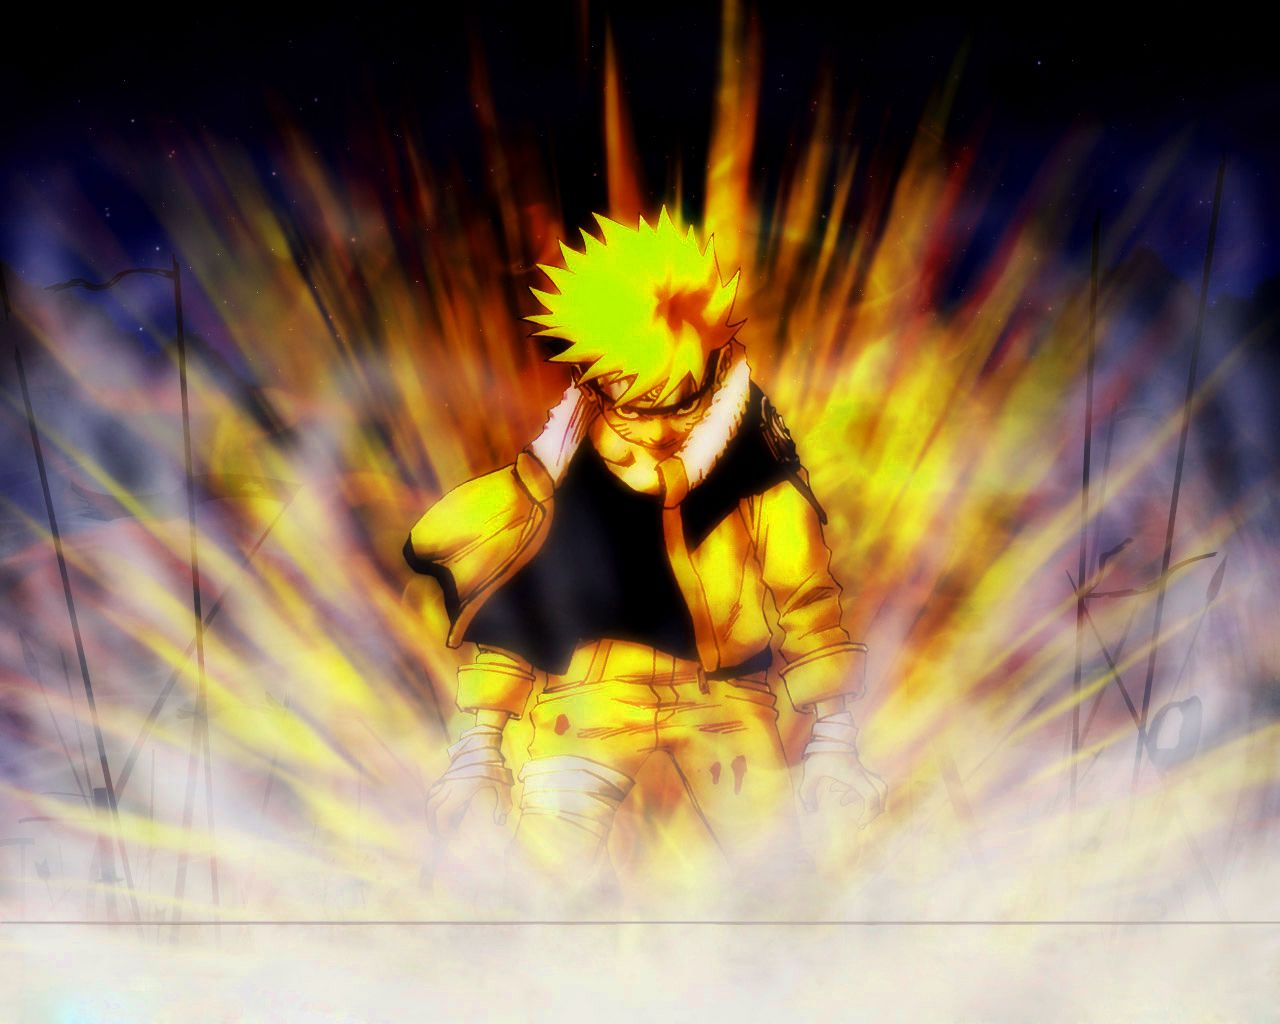 Naruto moving wallpapers 12801024 high definition